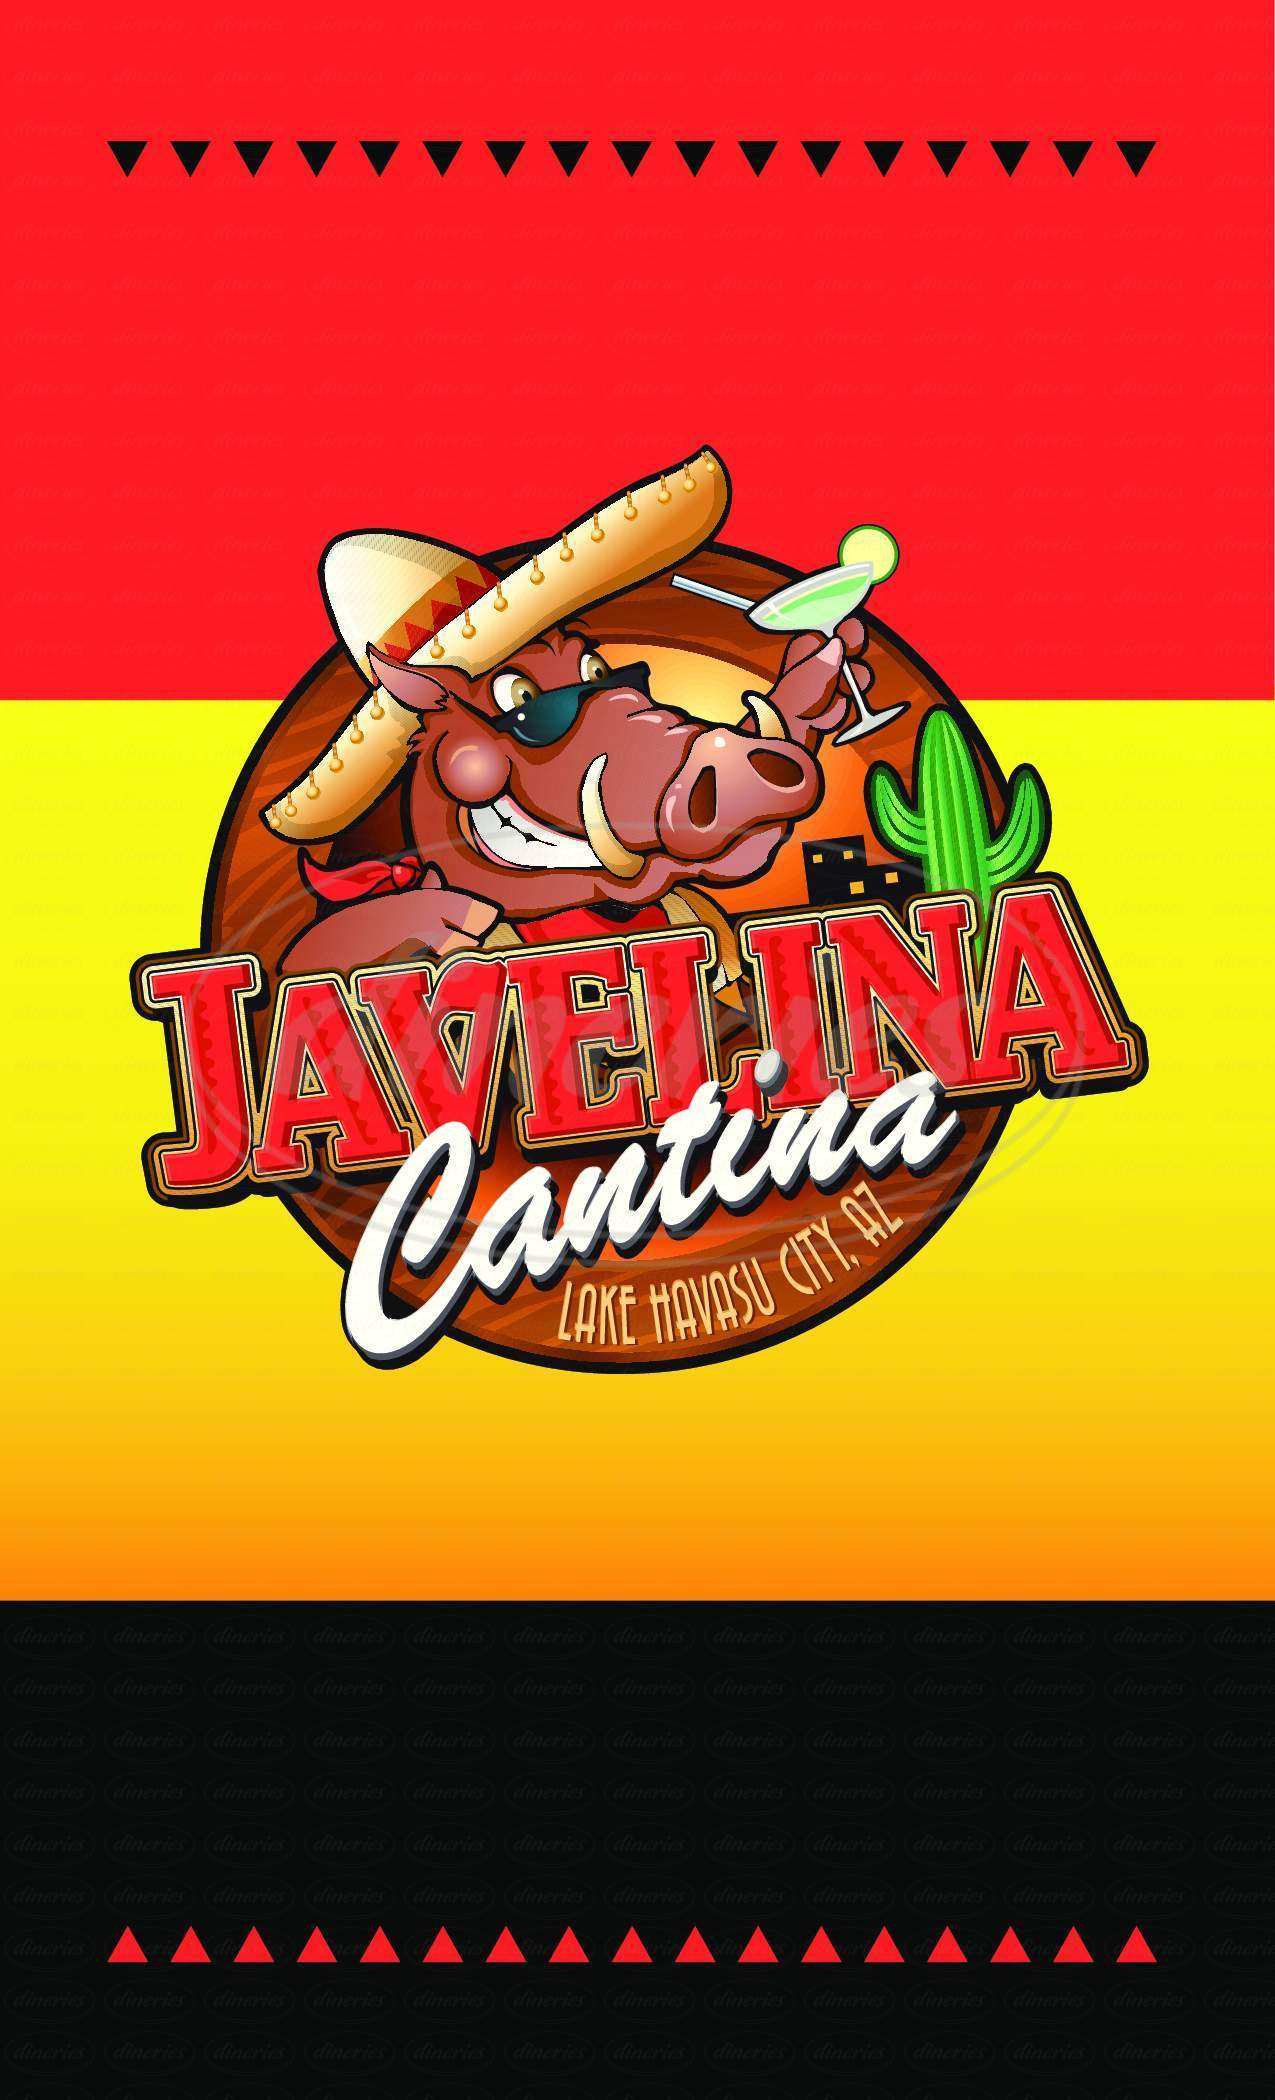 menu for Javelina Cantina